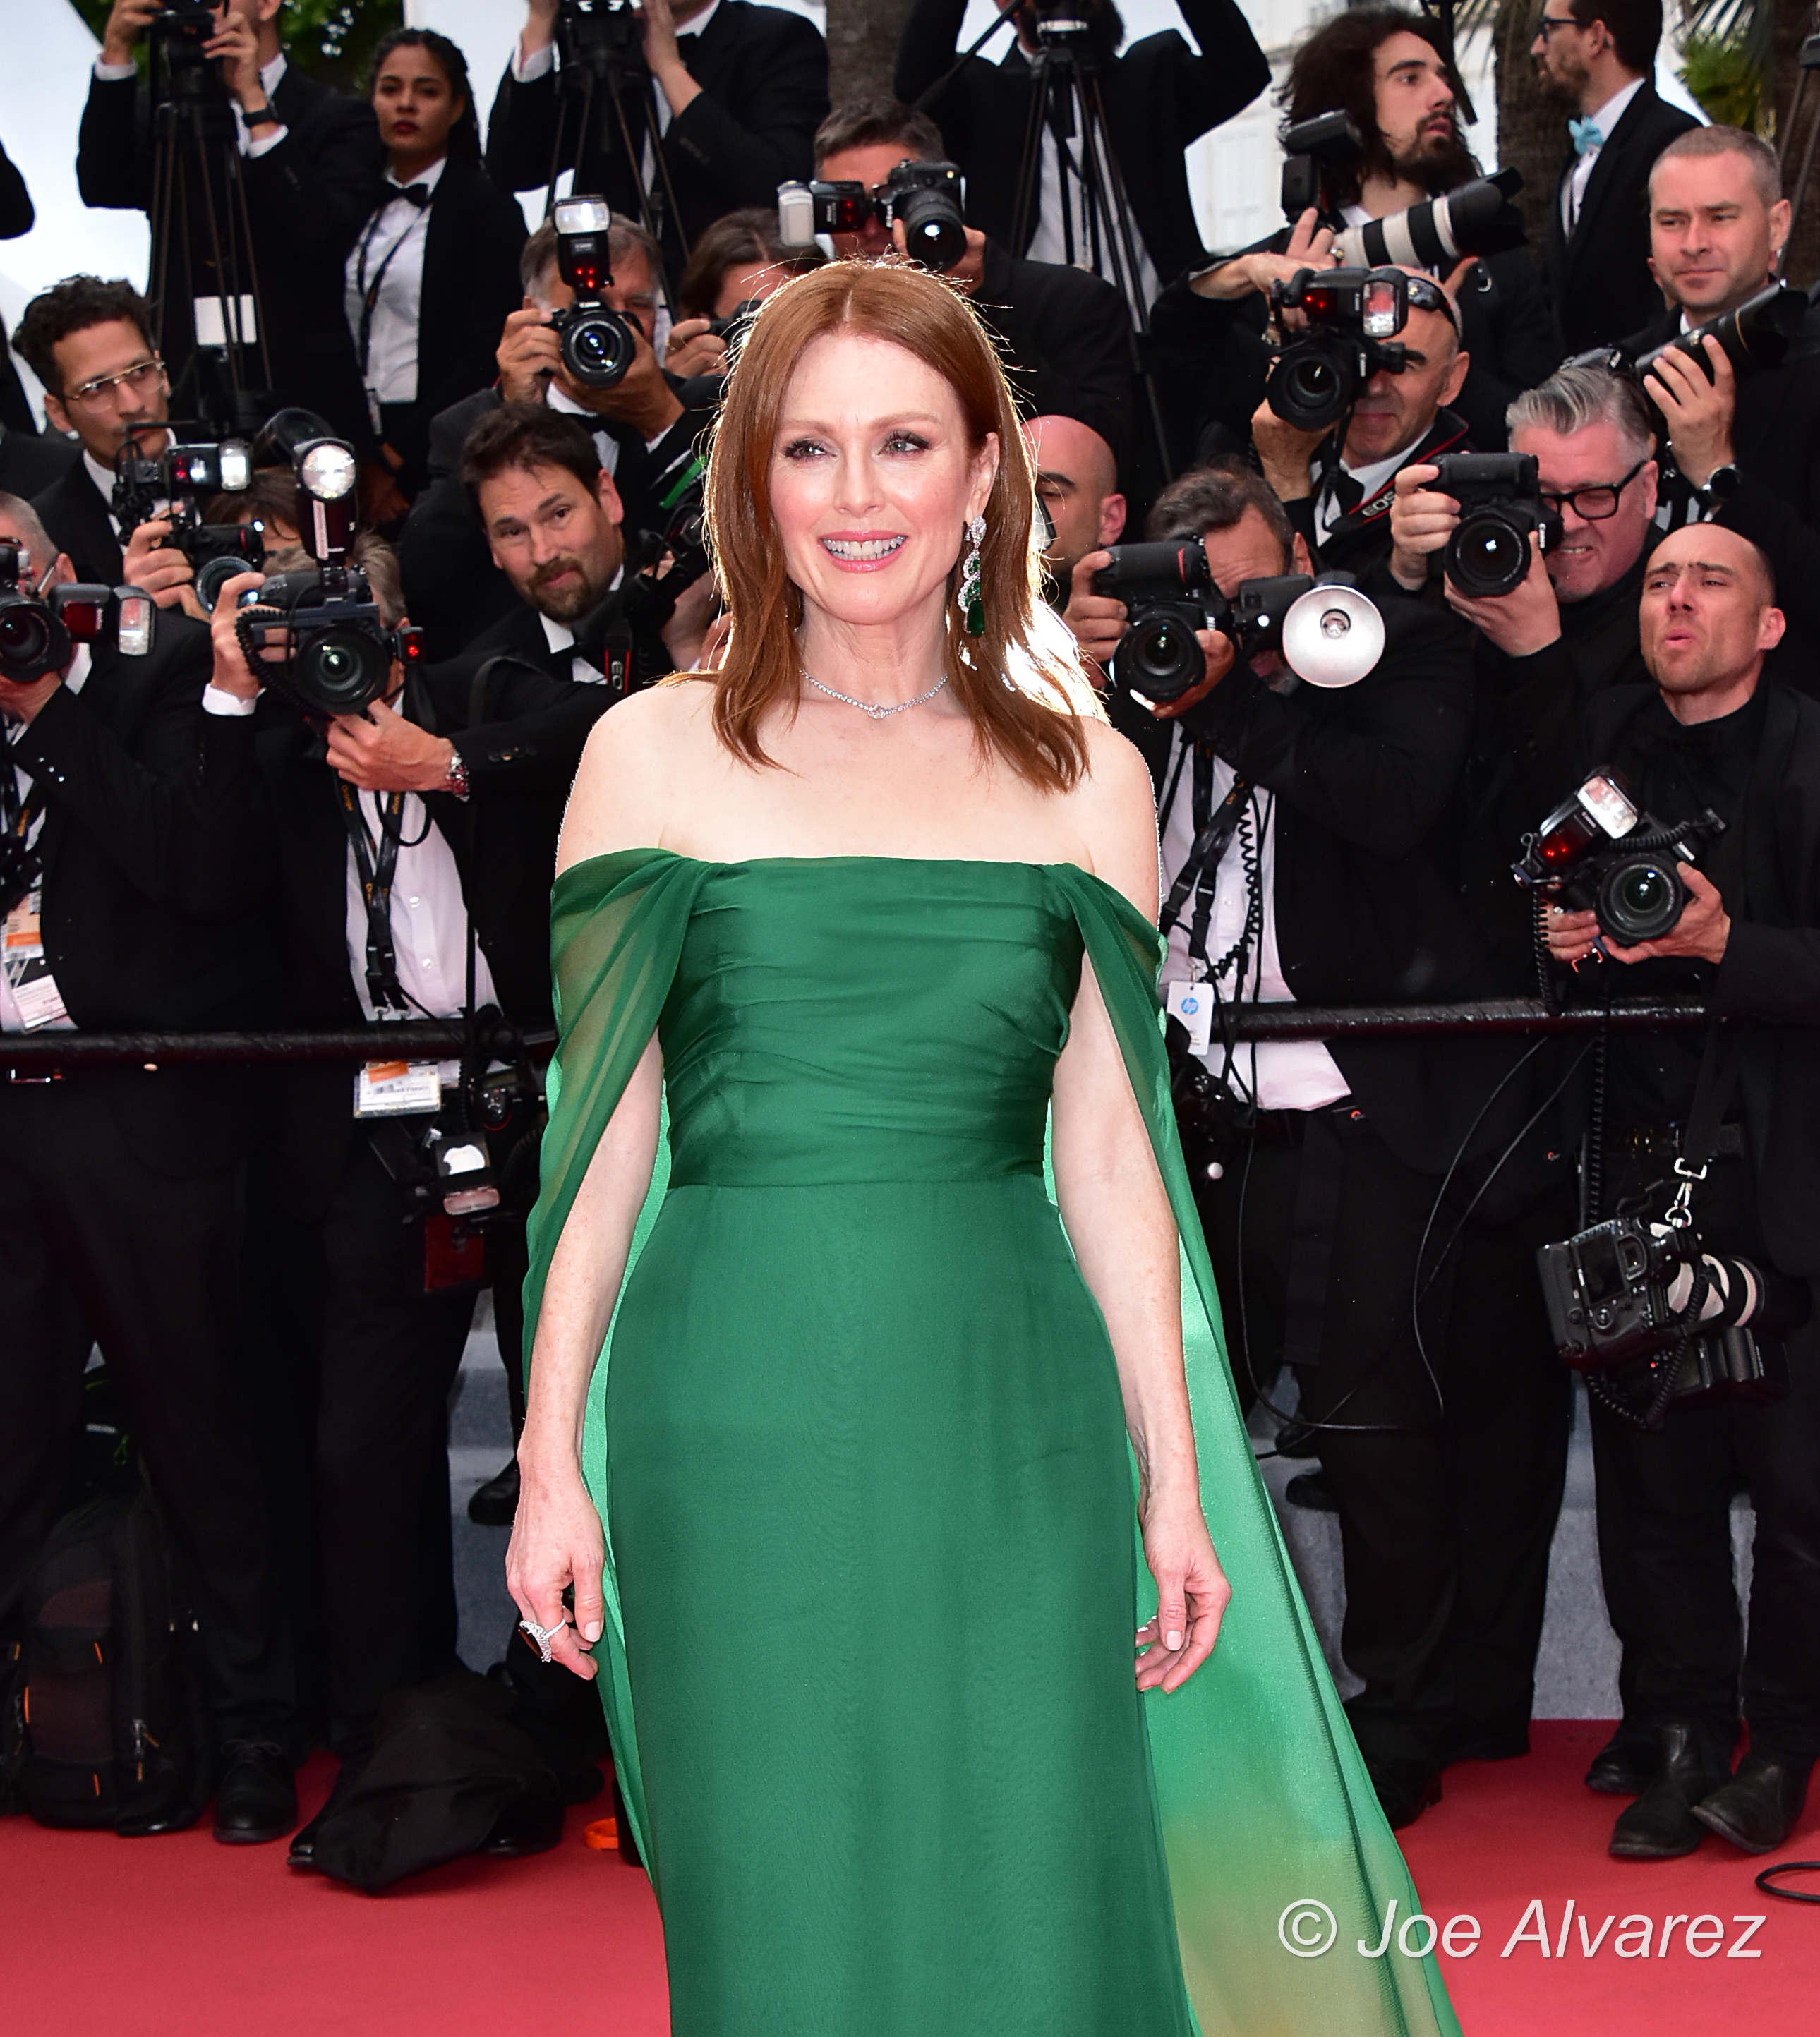 Julianne Moore 72 Cannes Film Festival attending the opening night premiere The Dead Don't Die © Joe Alvarez